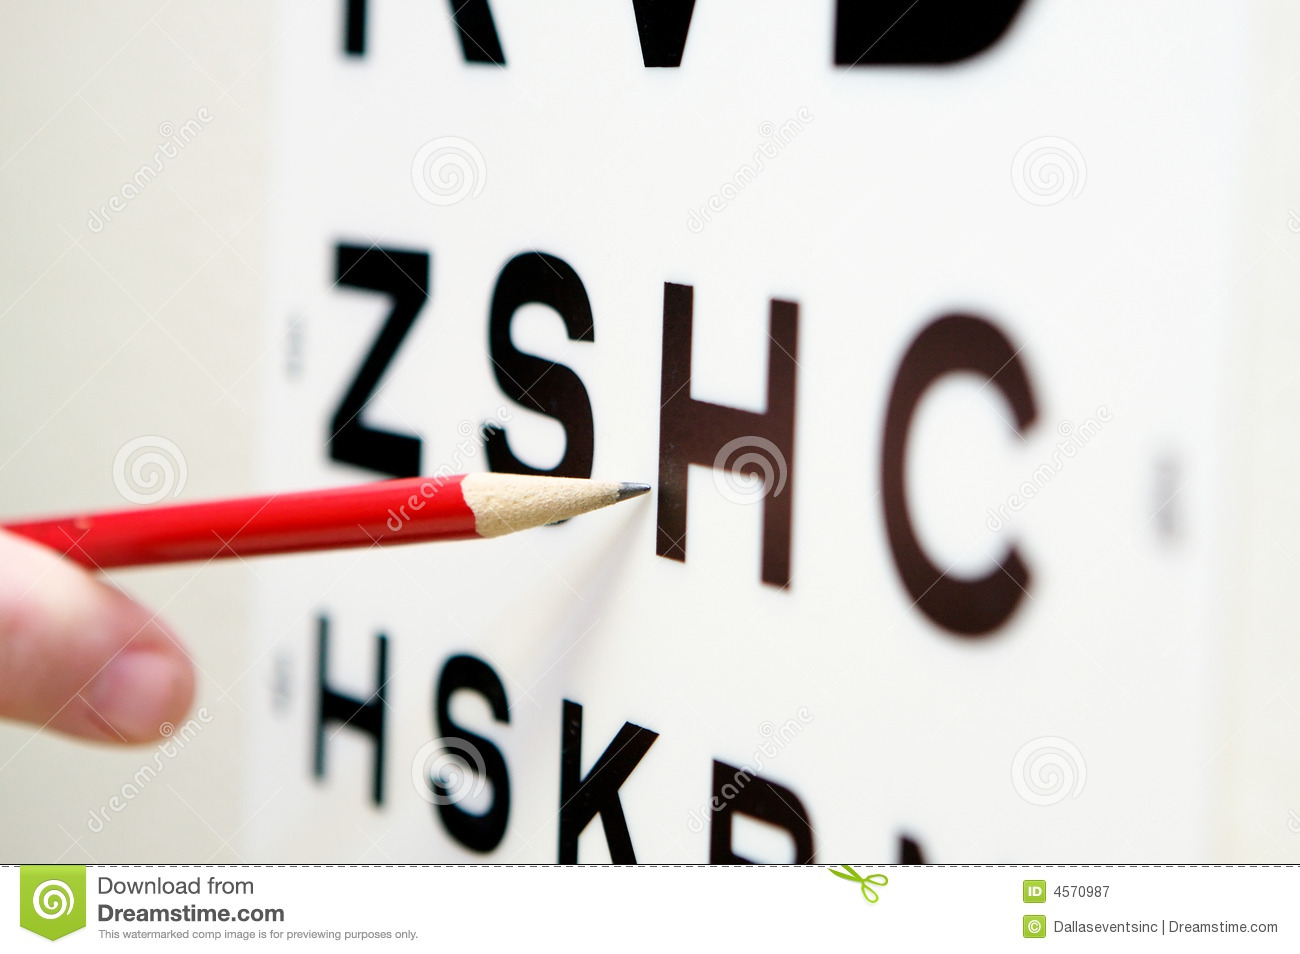 Vision eye test chart stock image image of chart glasses 4570987 vision eye test chart geenschuldenfo Image collections